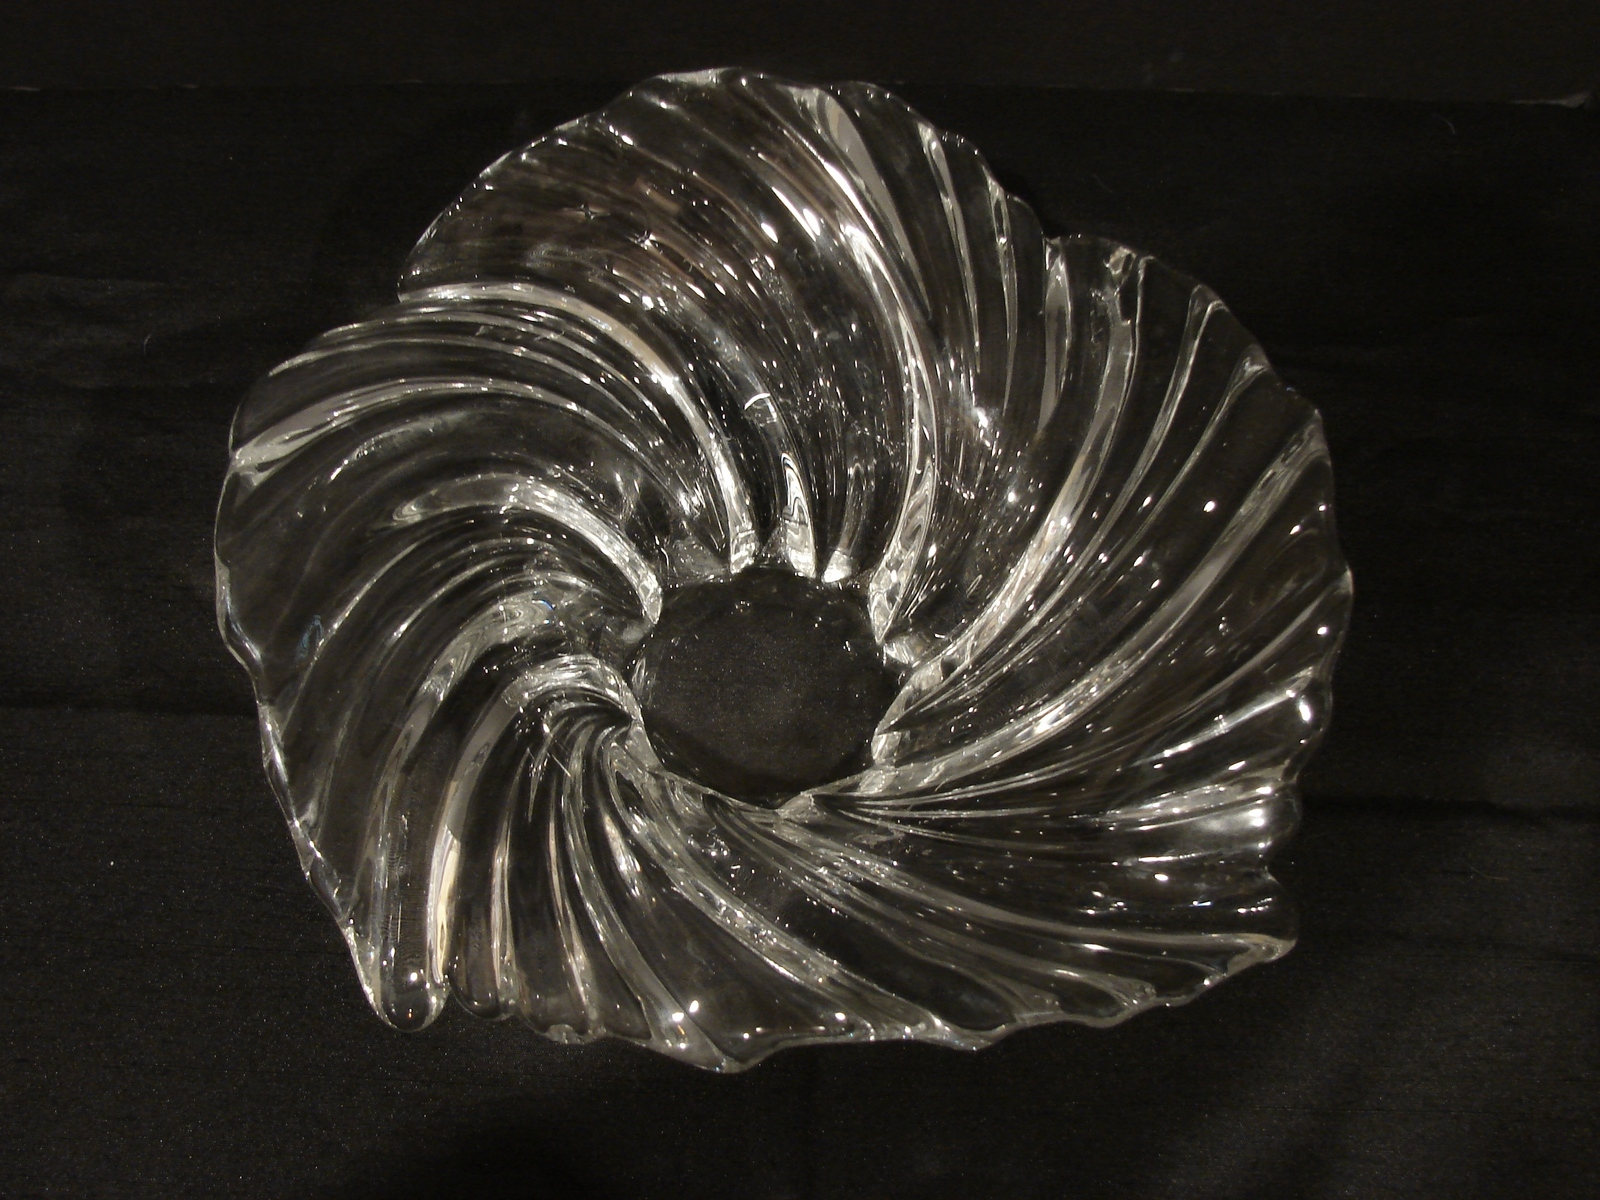 Primary image for Mikasa Belle Epoque Swirl Decorative Bowl - Clear Glass Regalville Wavy Centerpi